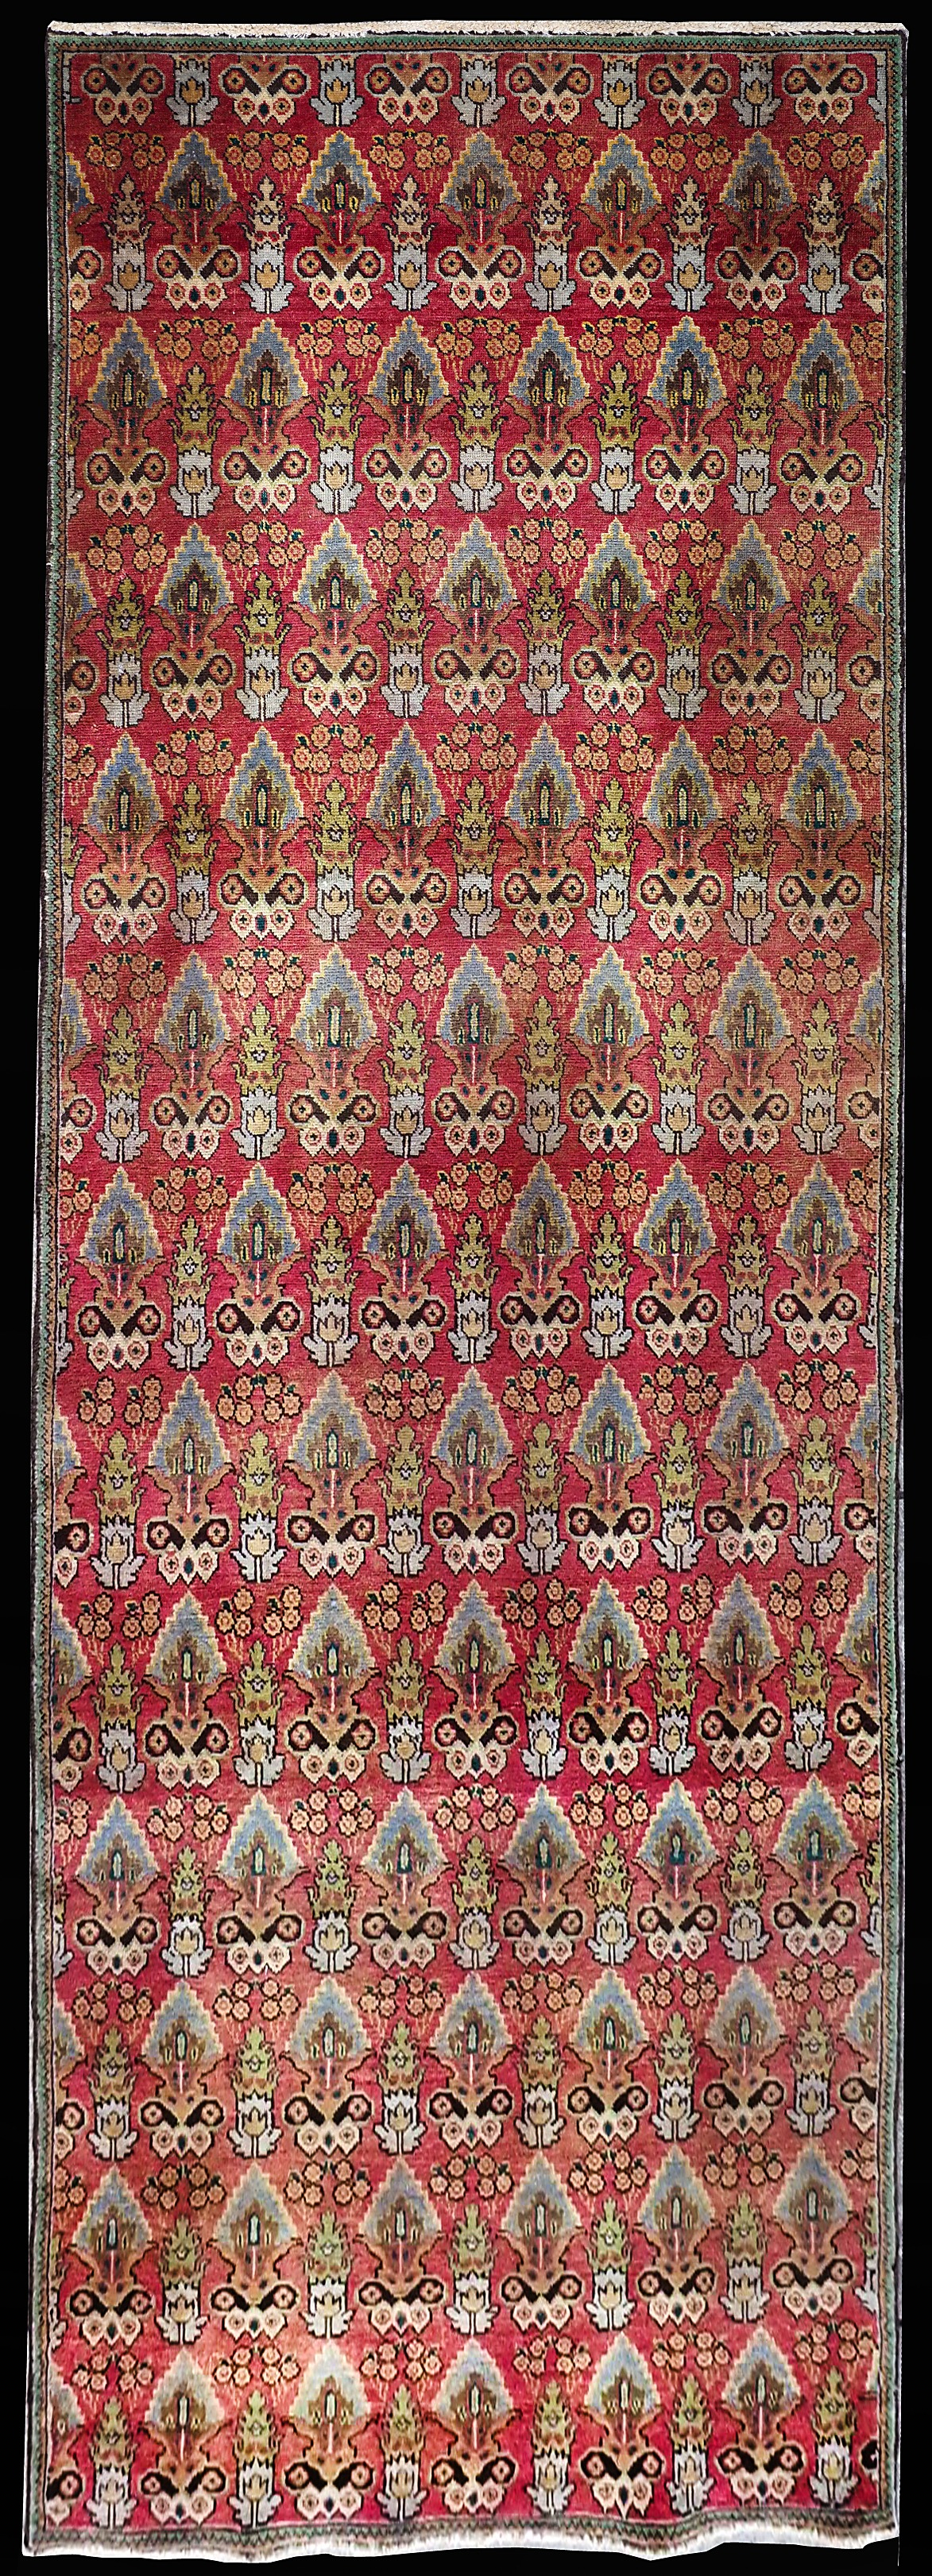 Wool Authentic Persian carpets